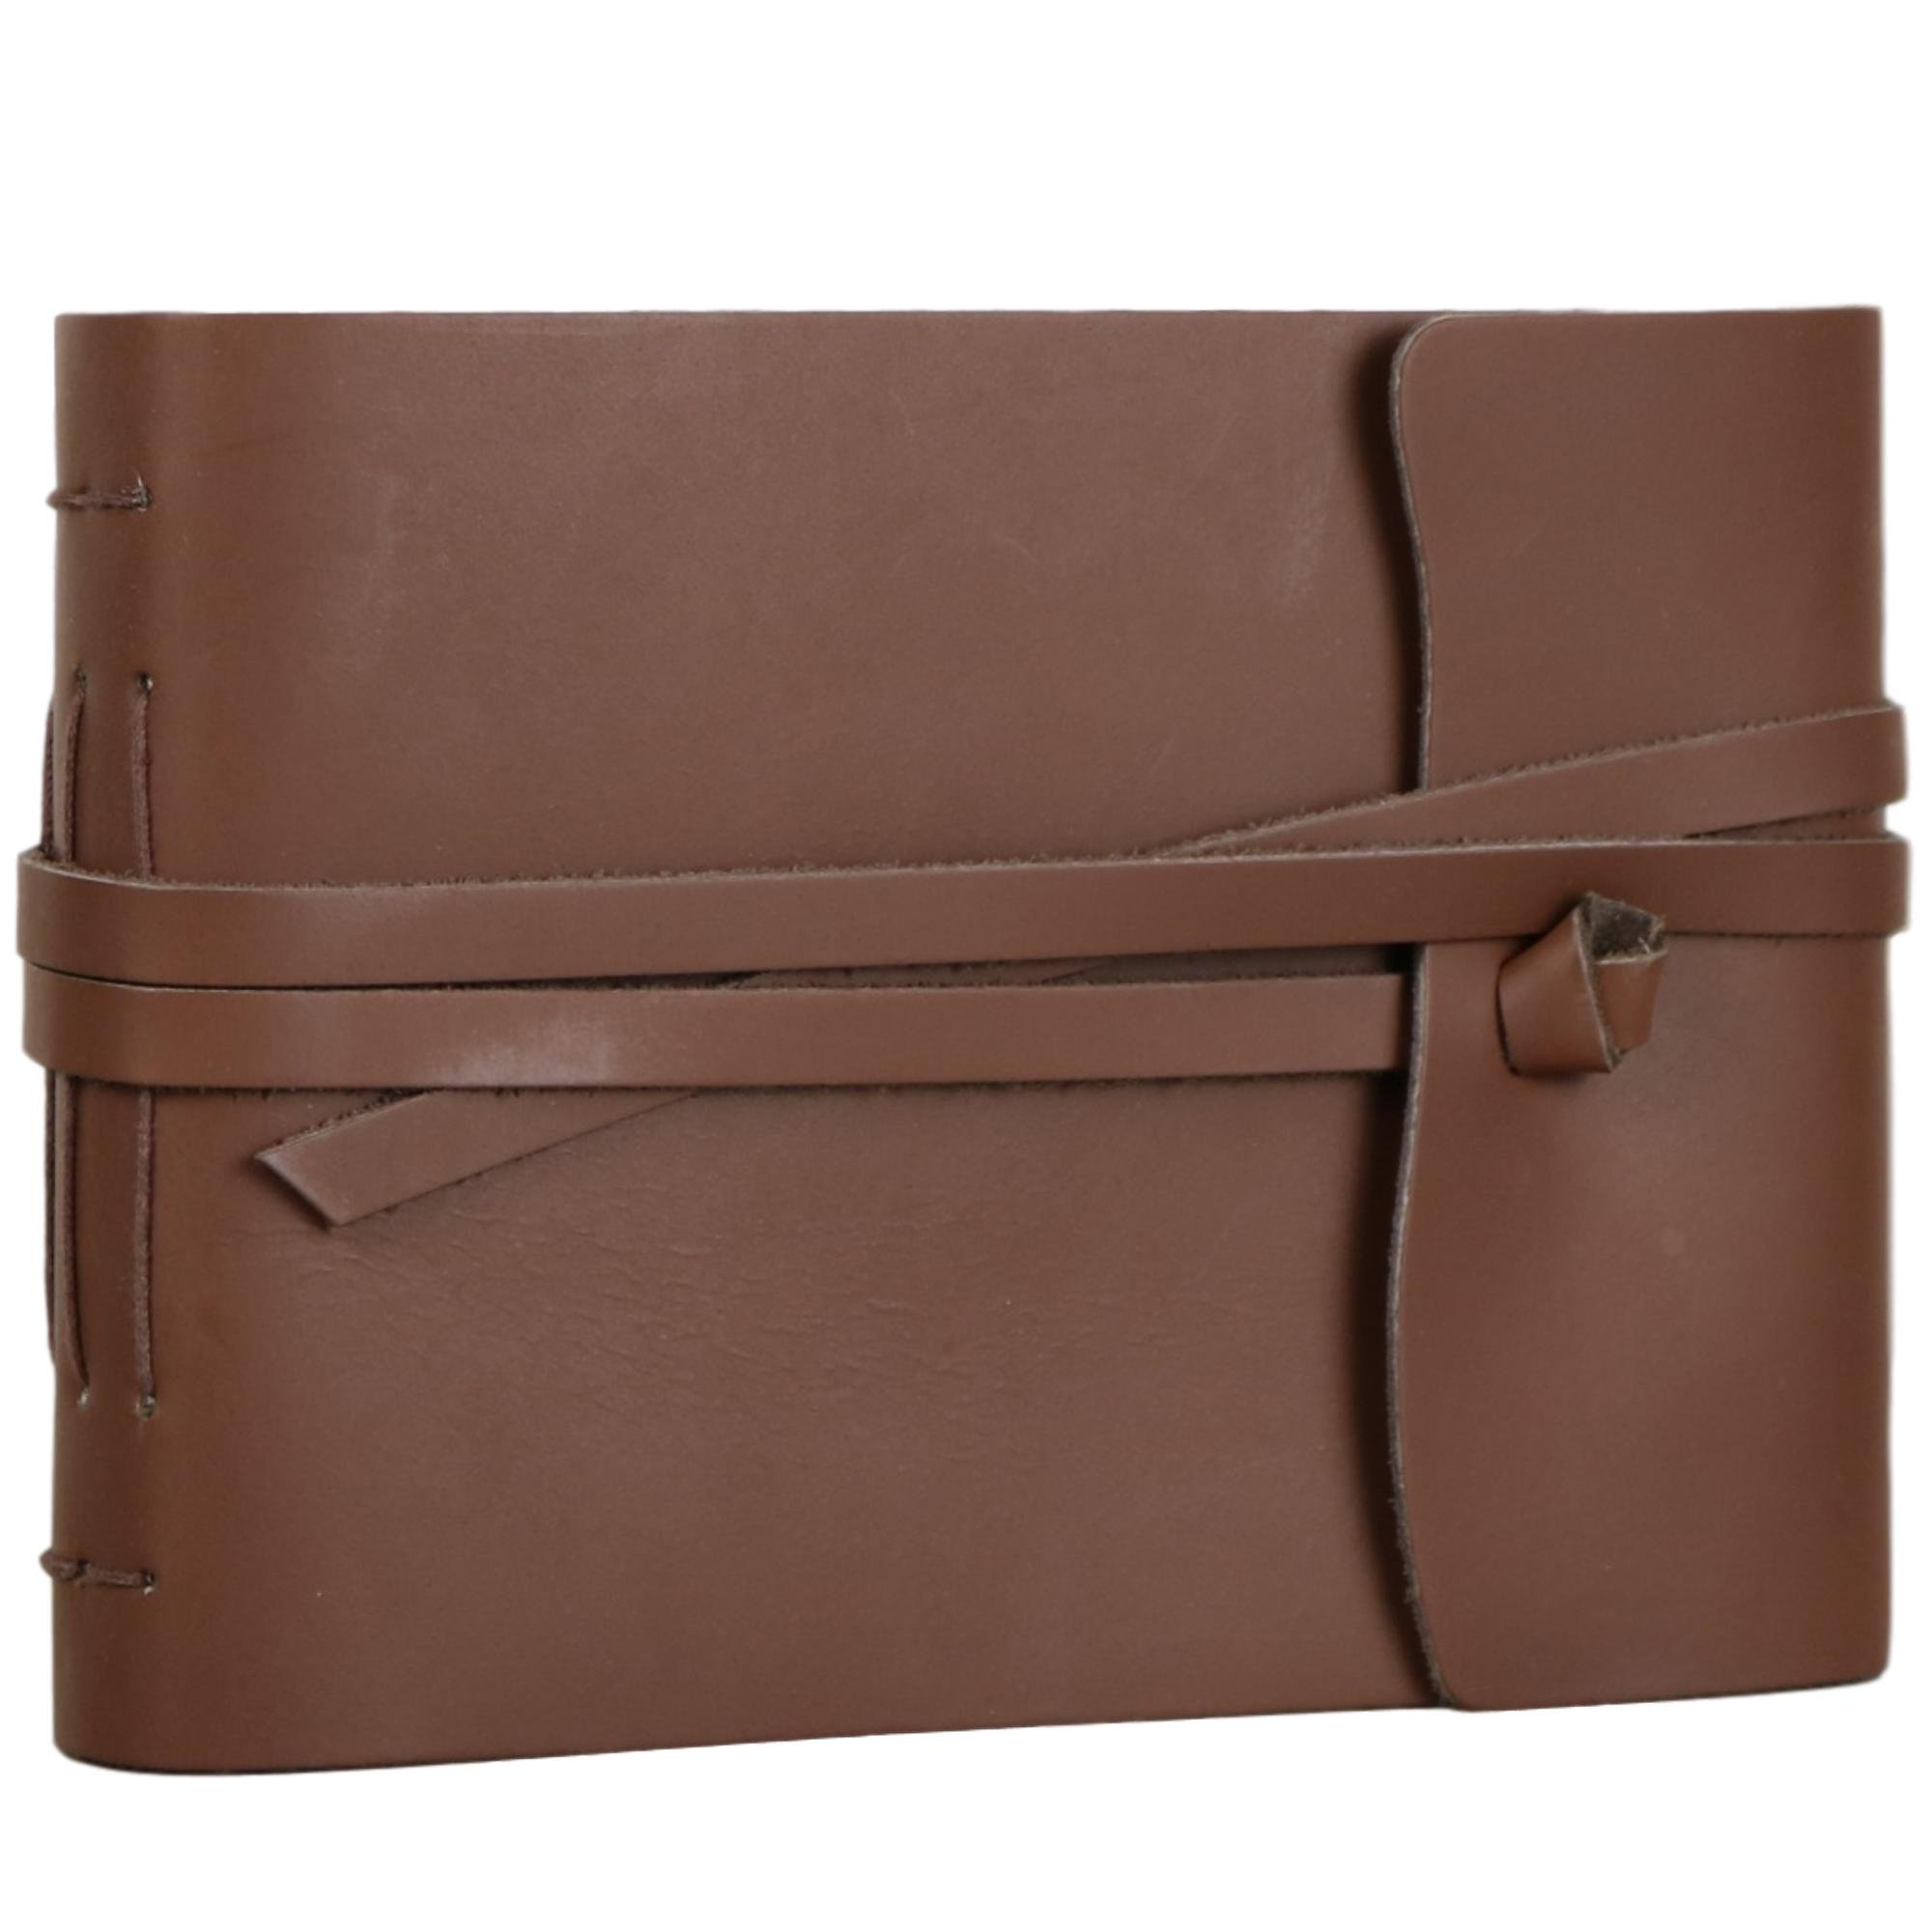 Ferus & Fivel Old Fashioned Leather Bound Photo Album with Wrap Around Strap 6 X 8 Inches